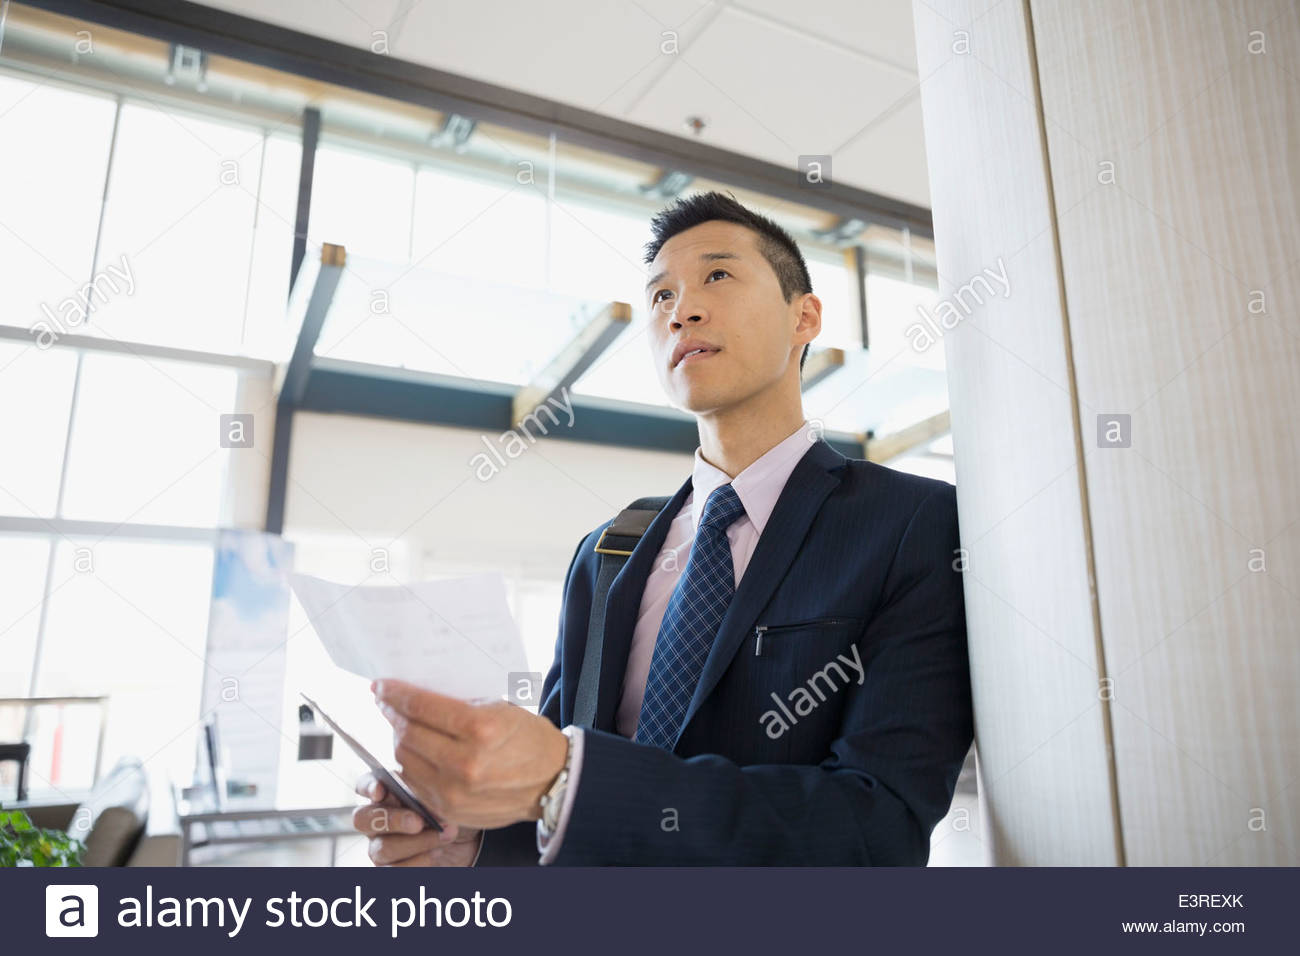 Businessman with ticket waiting in airport - Stock Image